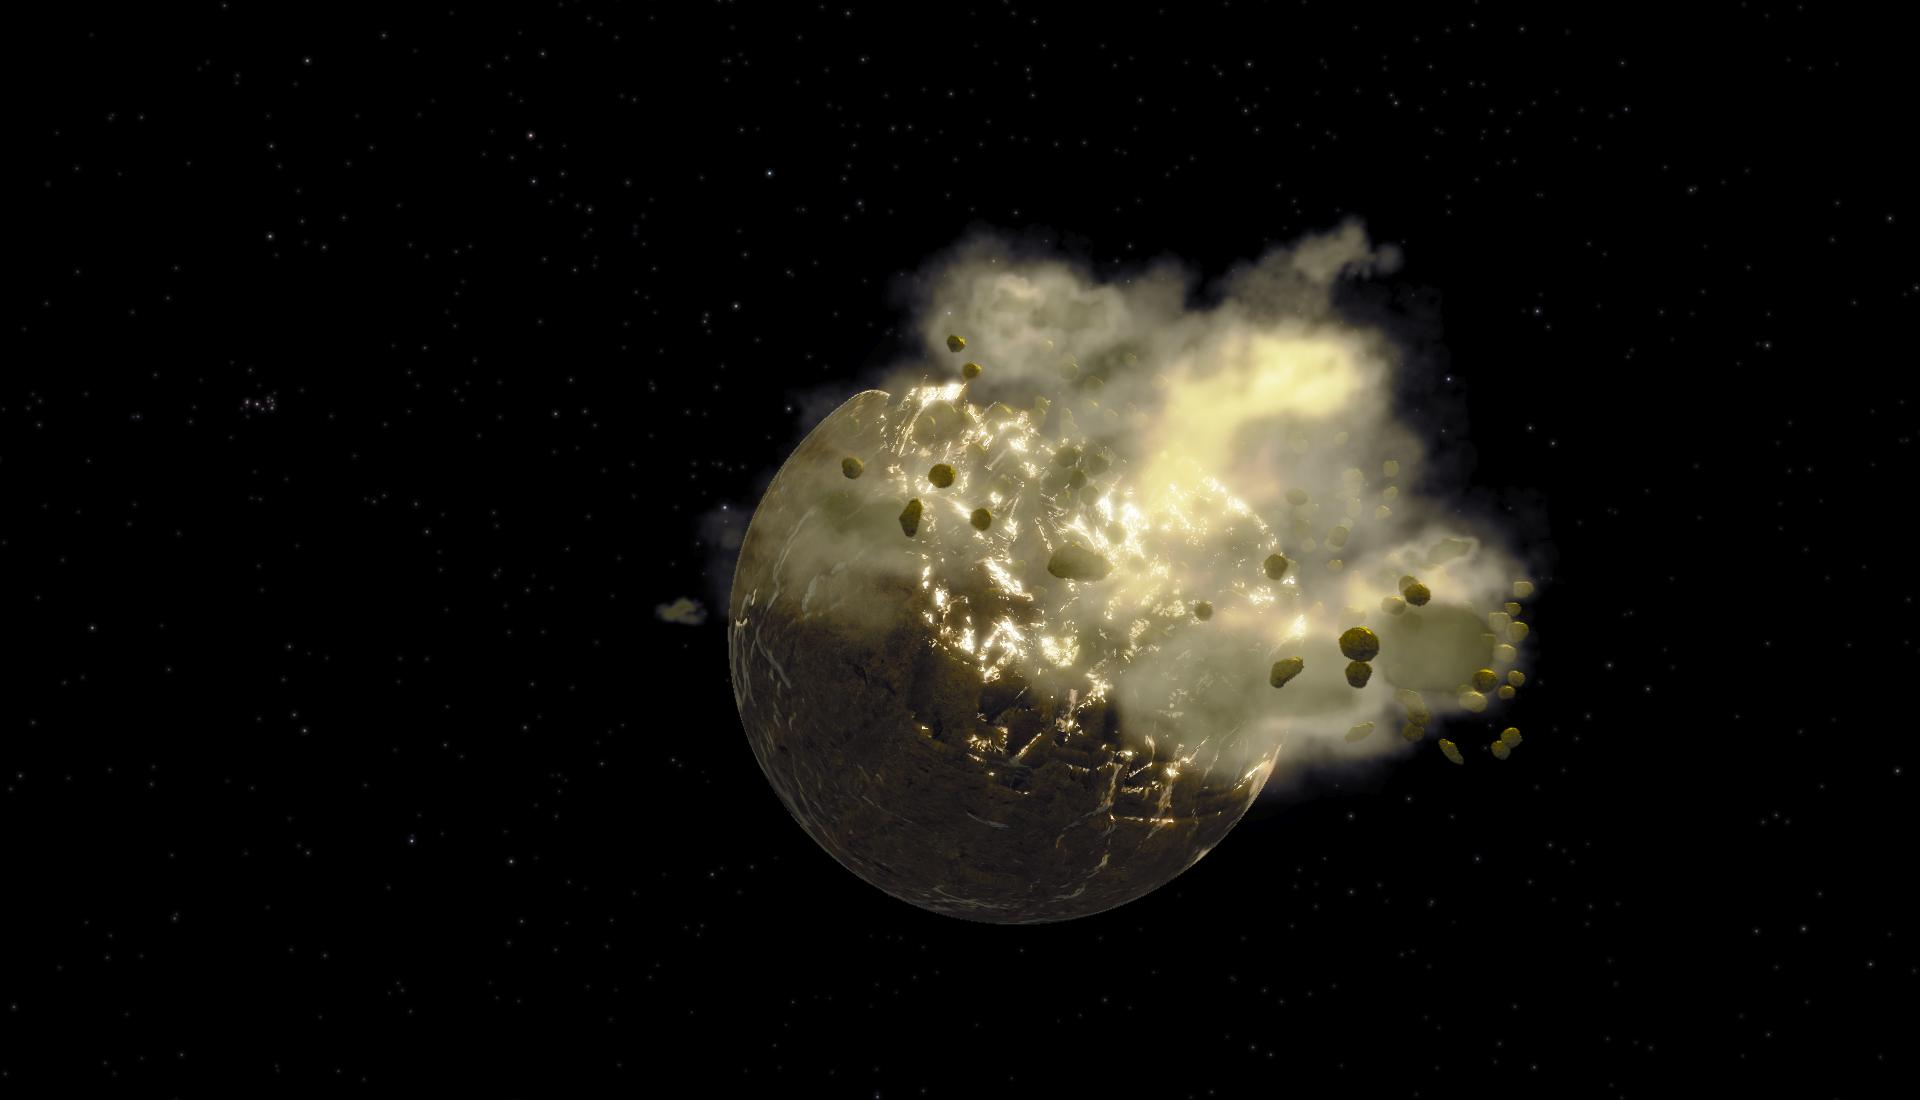 asteroid in space blowing up - photo #19